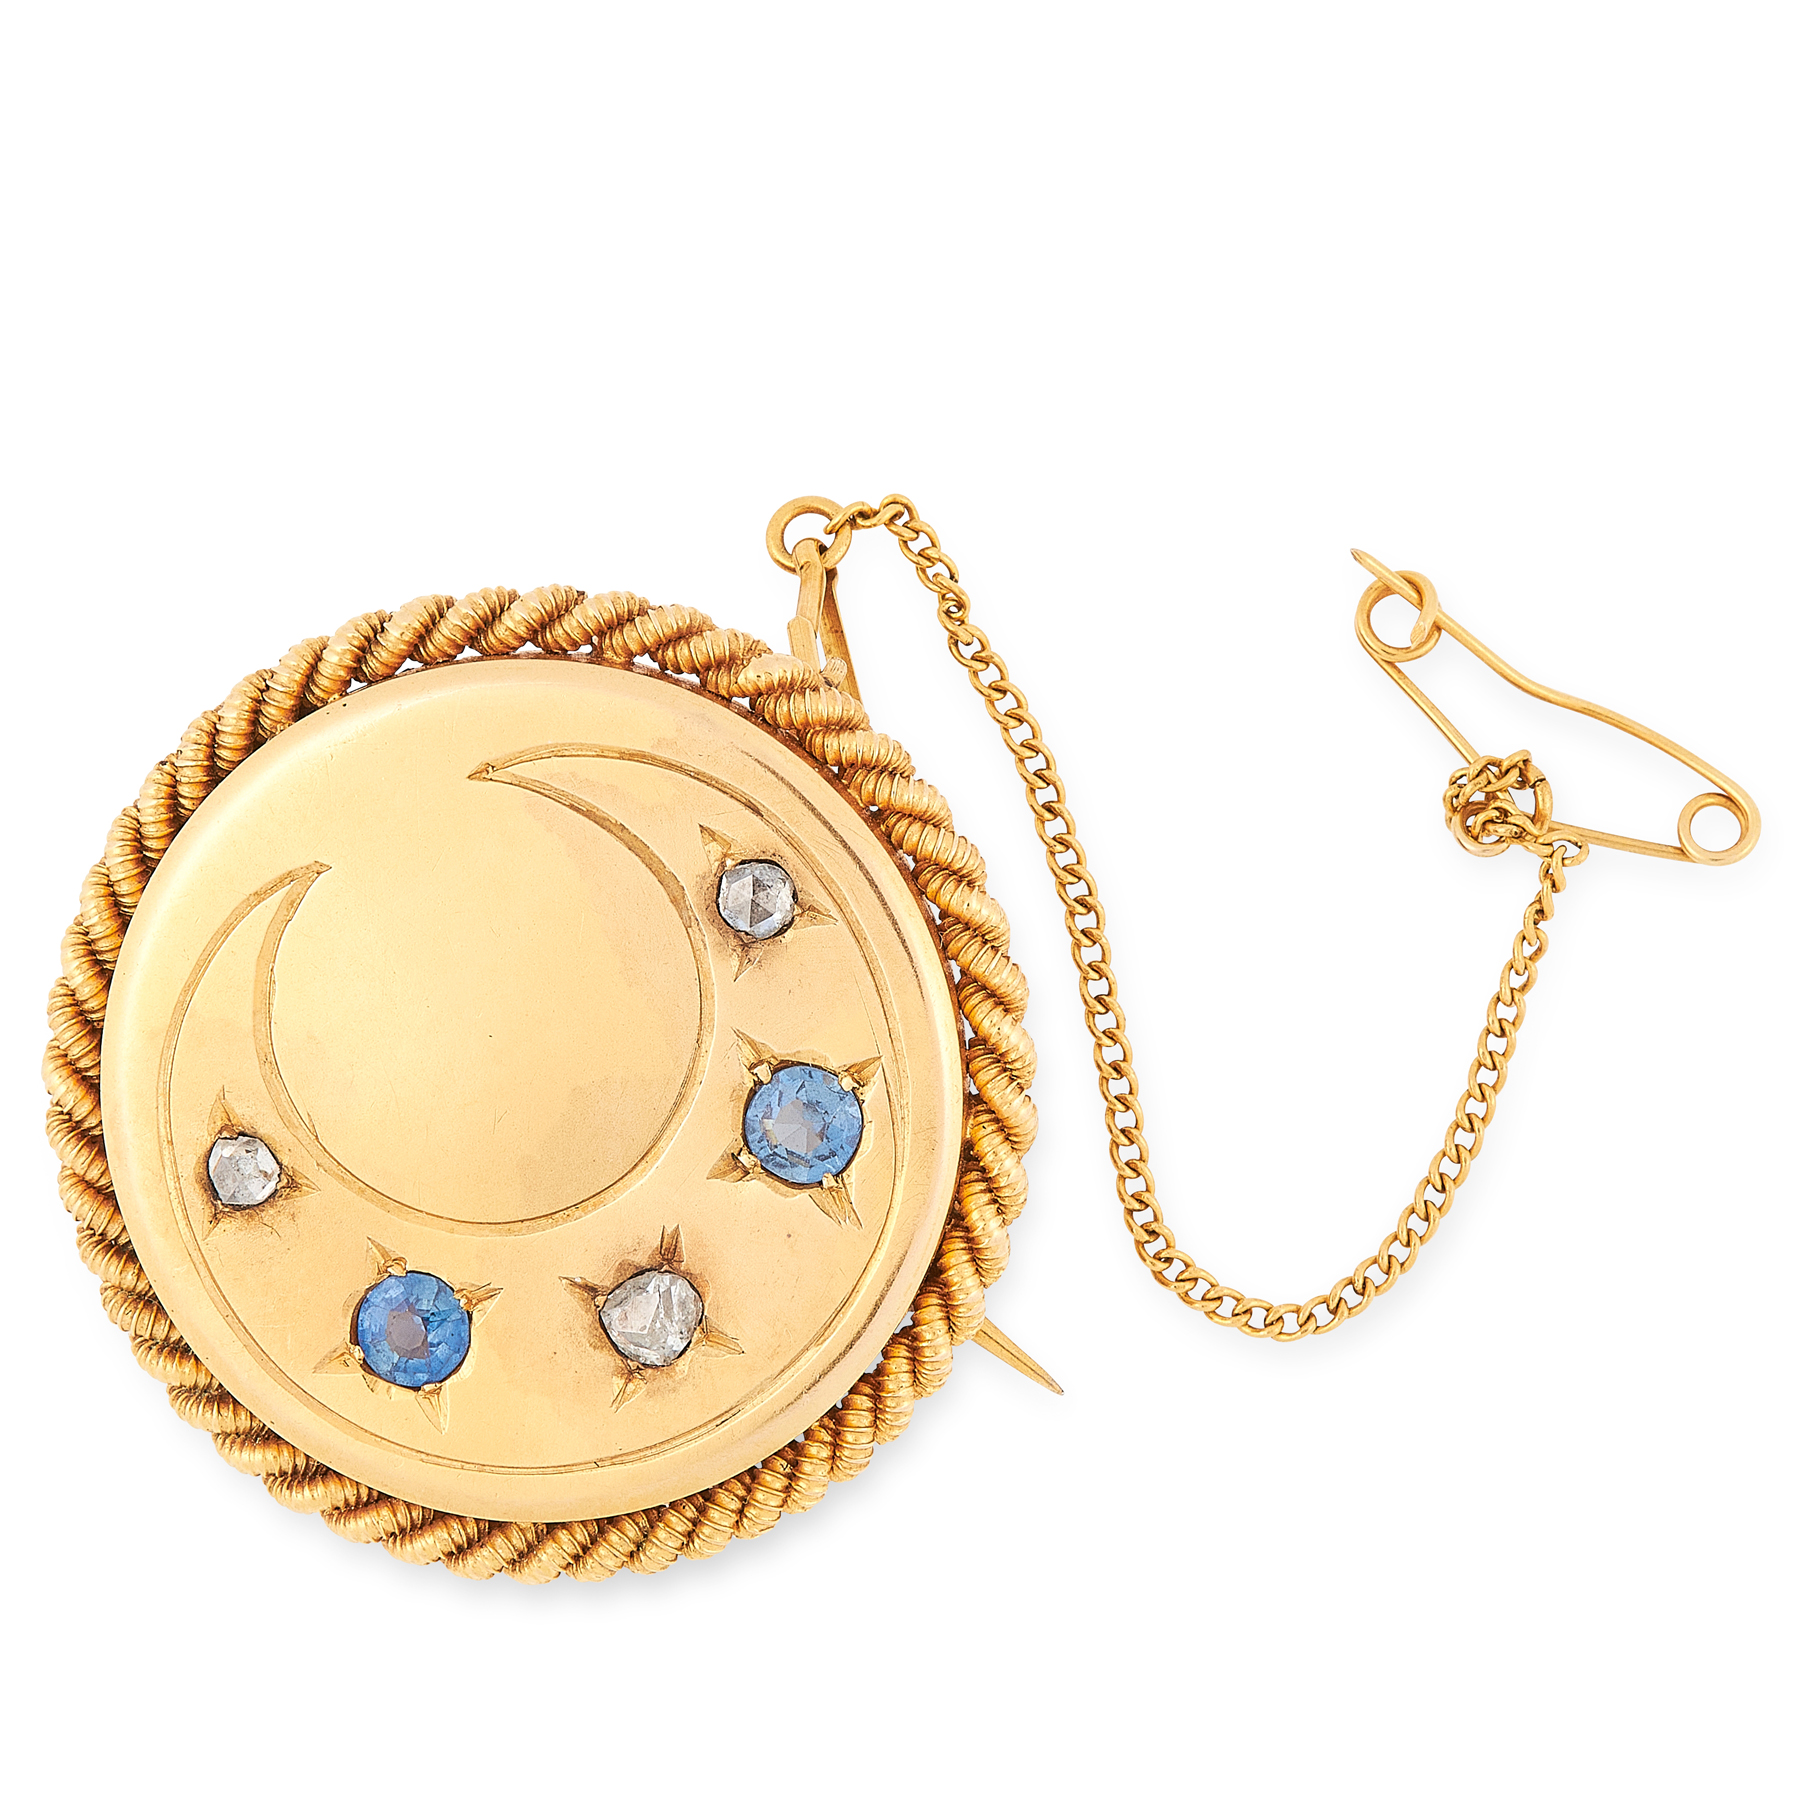 AN ANTIQUE SAPPHIRE AND DIAMOND CRESCENT BROOCH in 15ct yellow gold, of circular design with rope